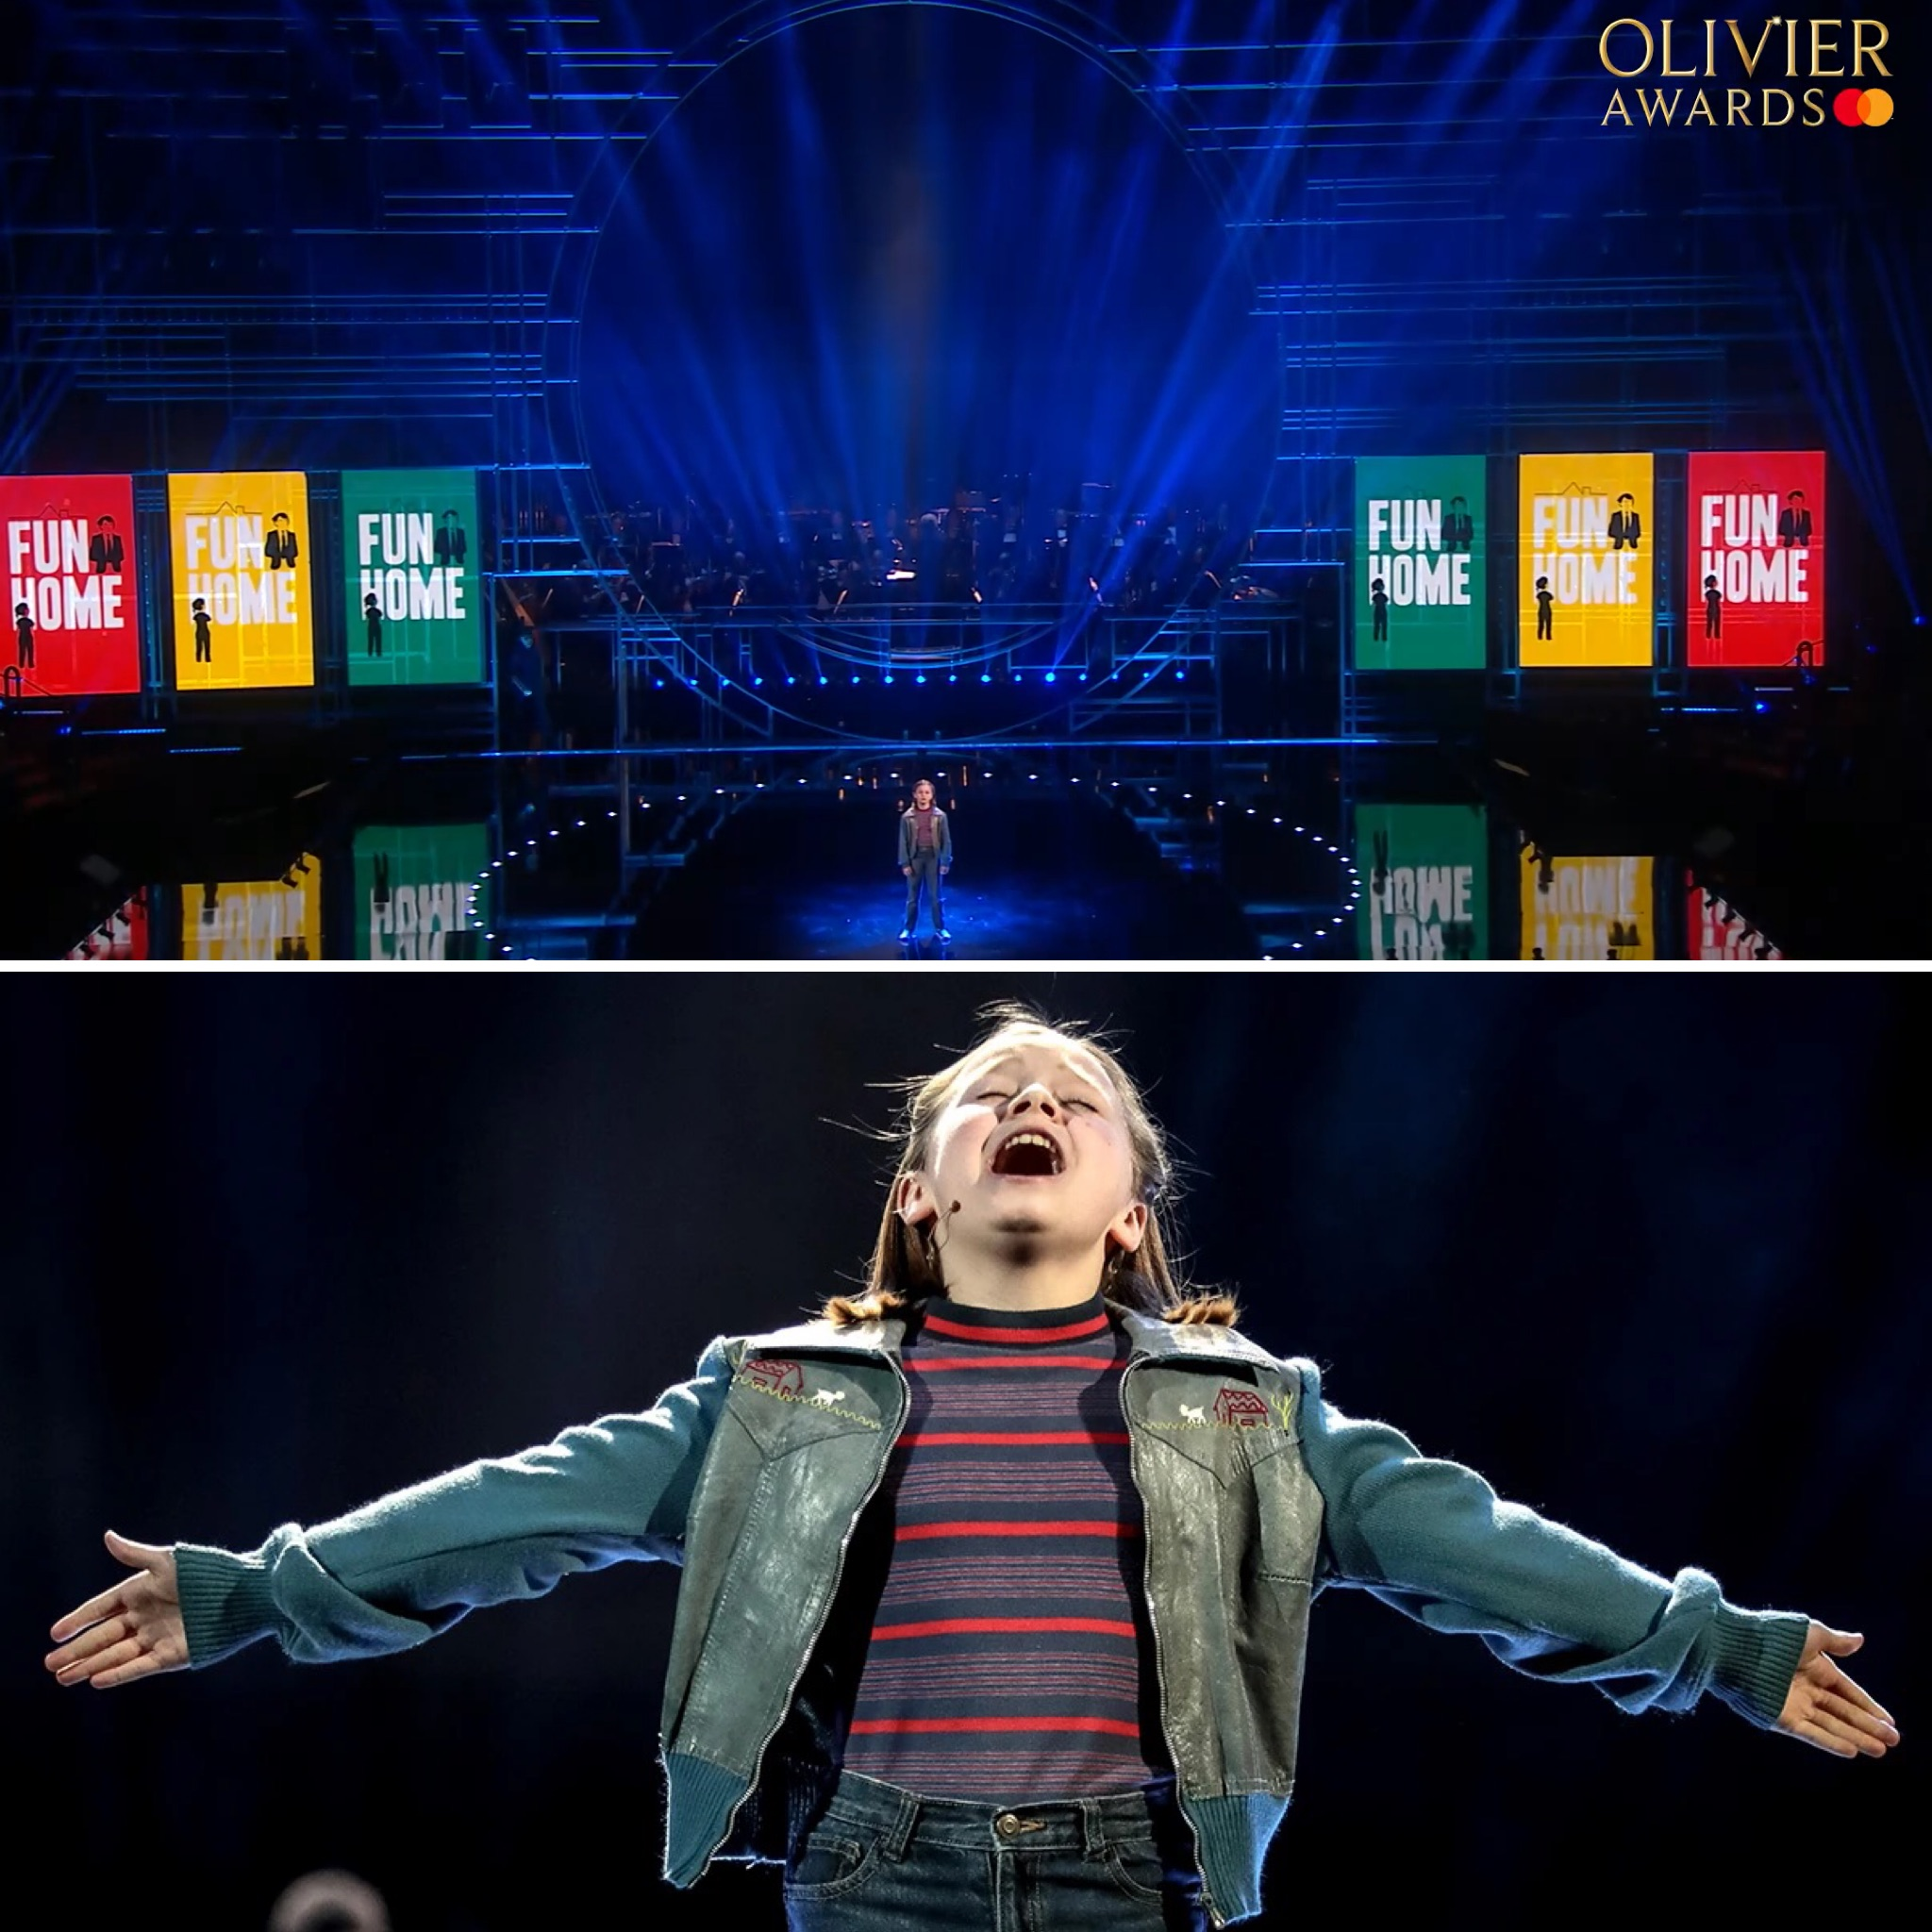 Fun Home_The Olivier Awards performance